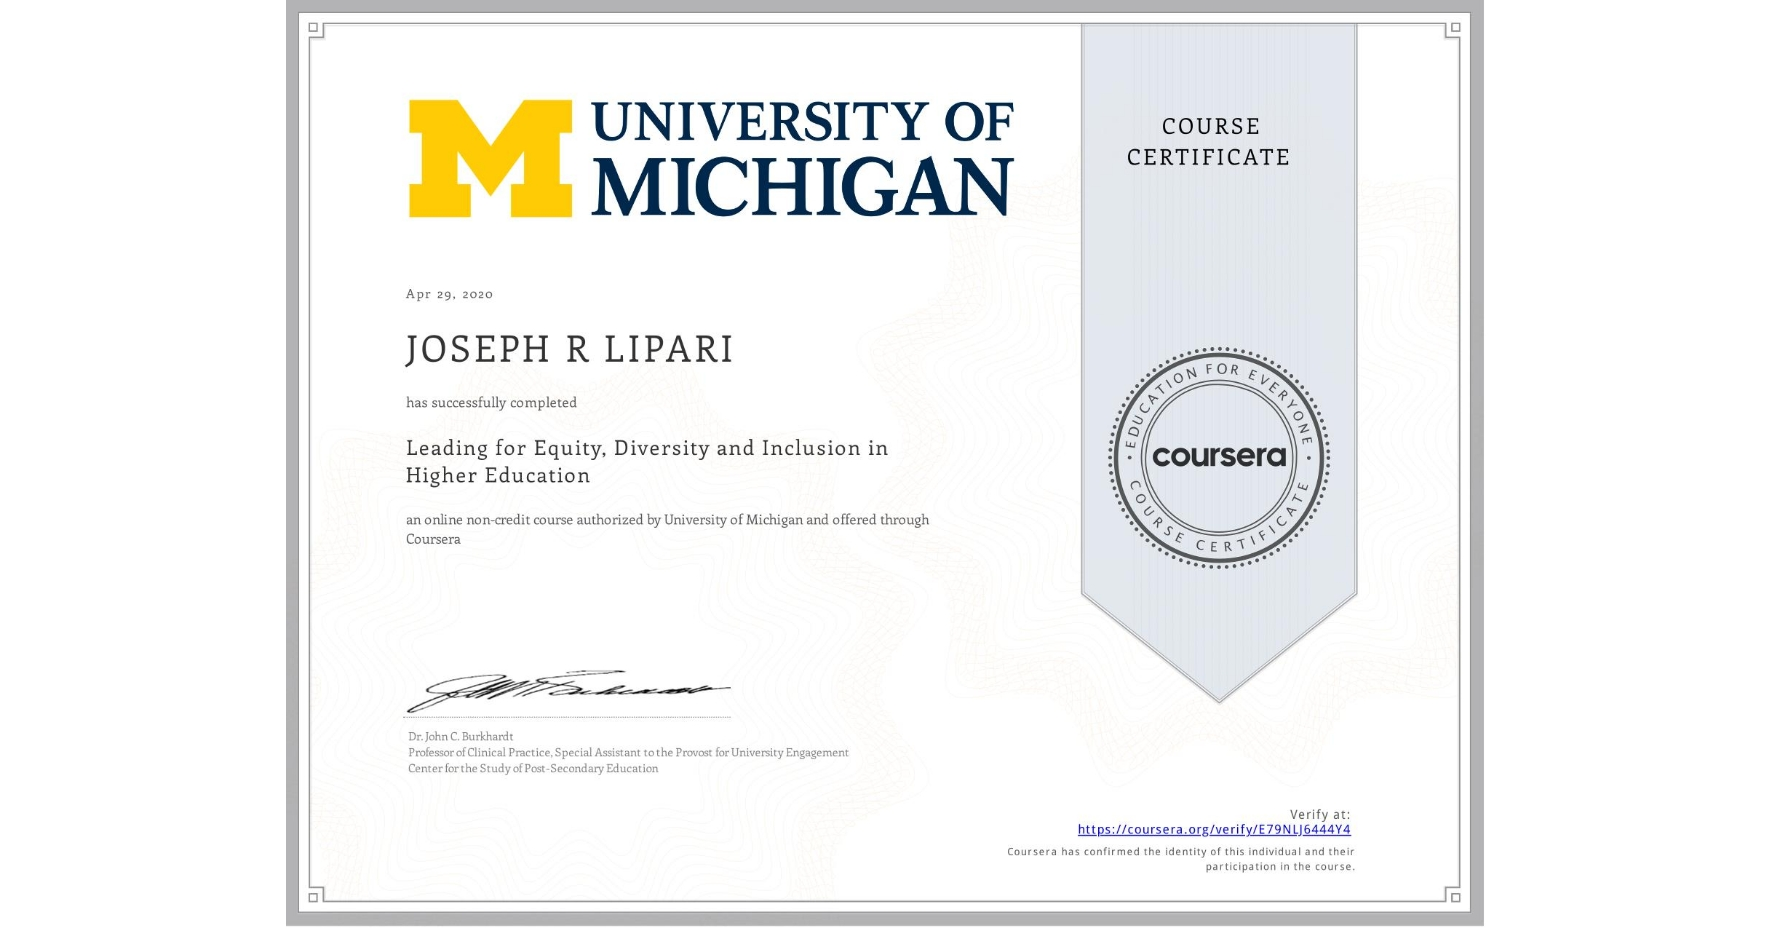 View certificate for JOSEPH R  LIPARI, Leading for Equity, Diversity and Inclusion in Higher Education, an online non-credit course authorized by University of Michigan and offered through Coursera